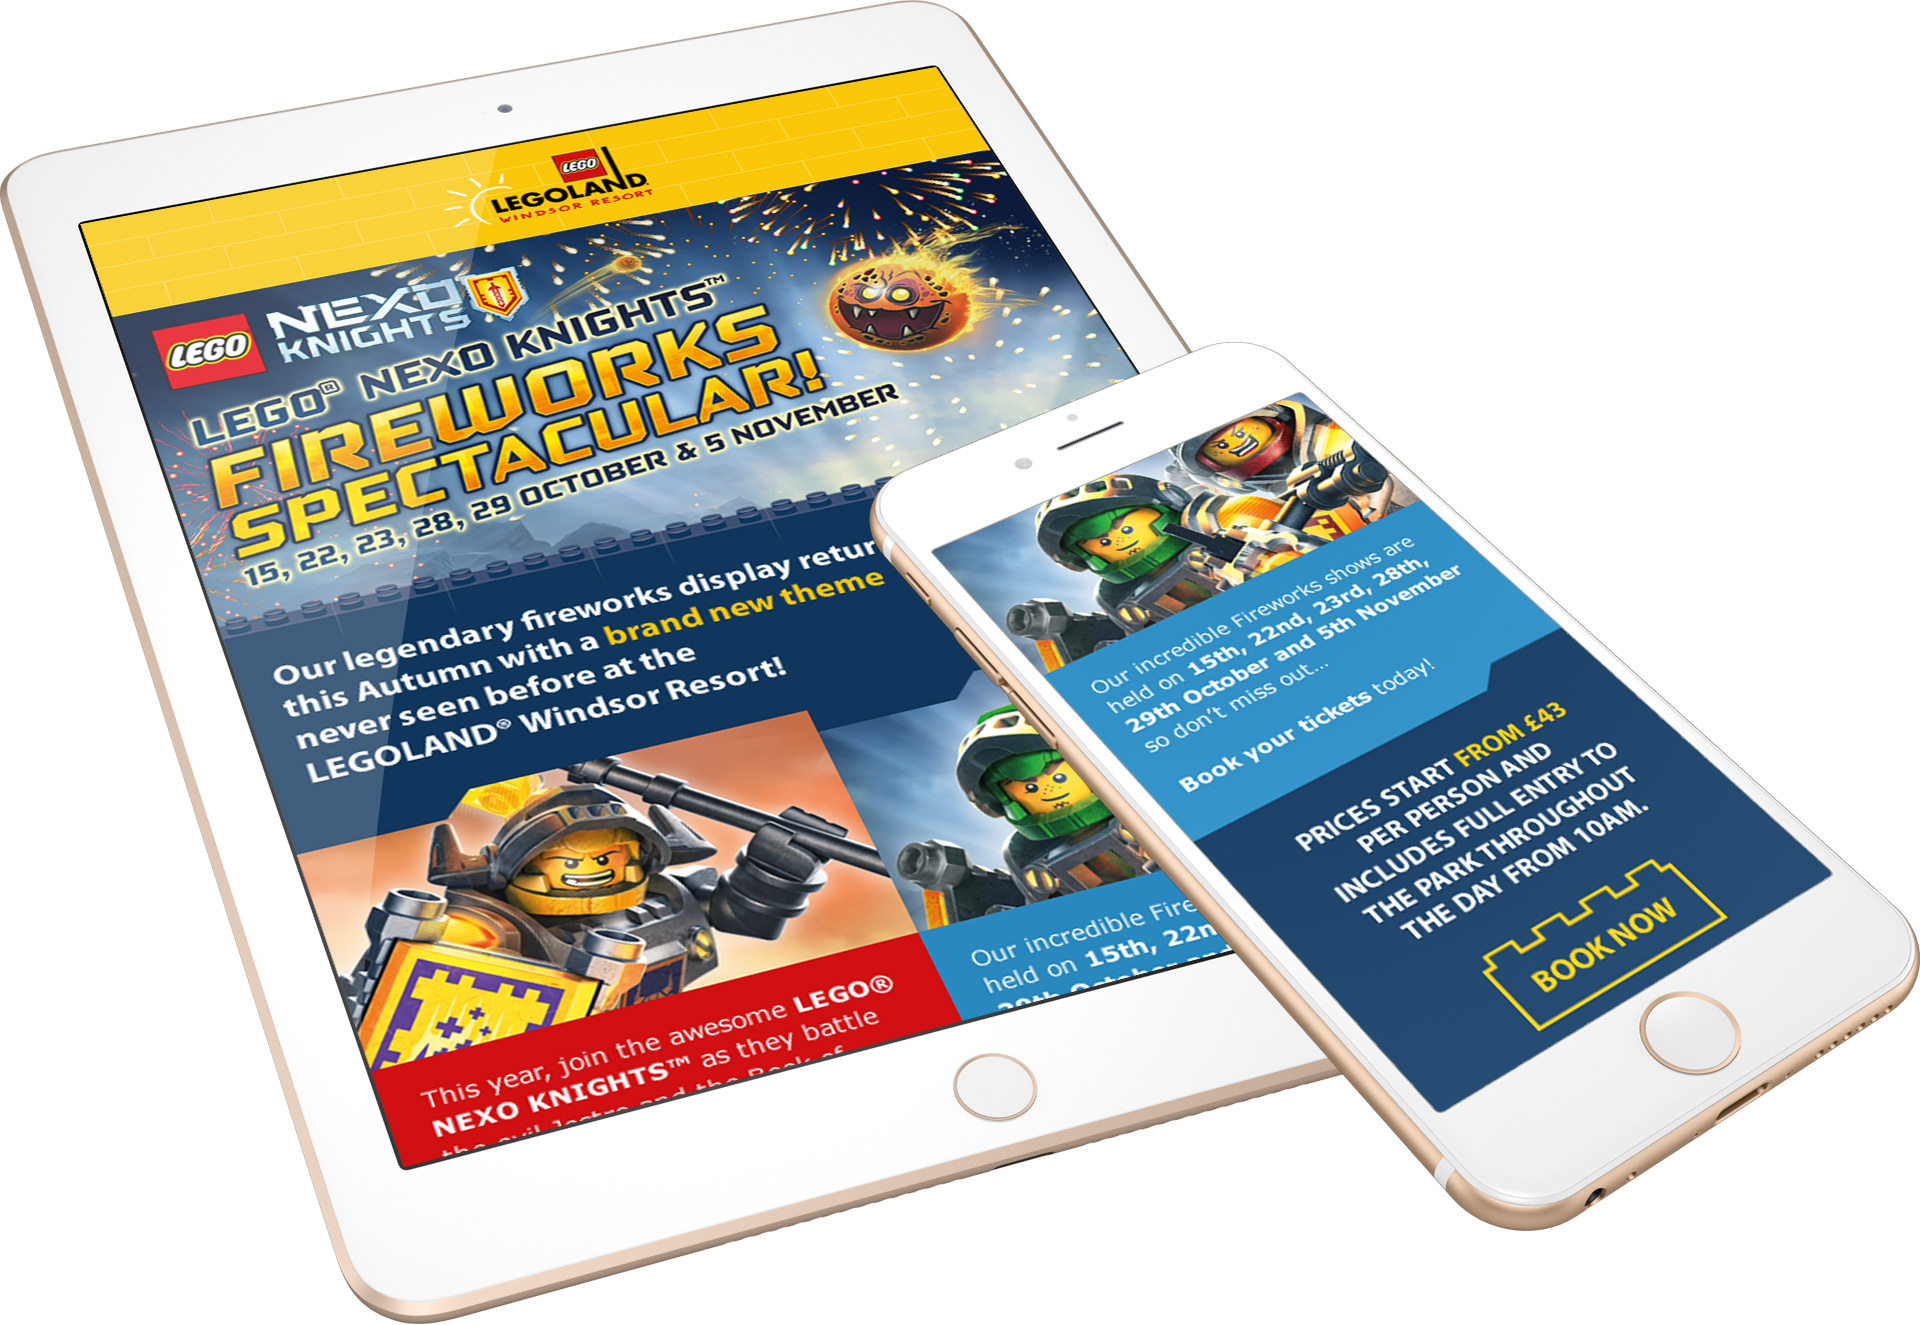 Legoland Nexo Knights Email Campaign Screens